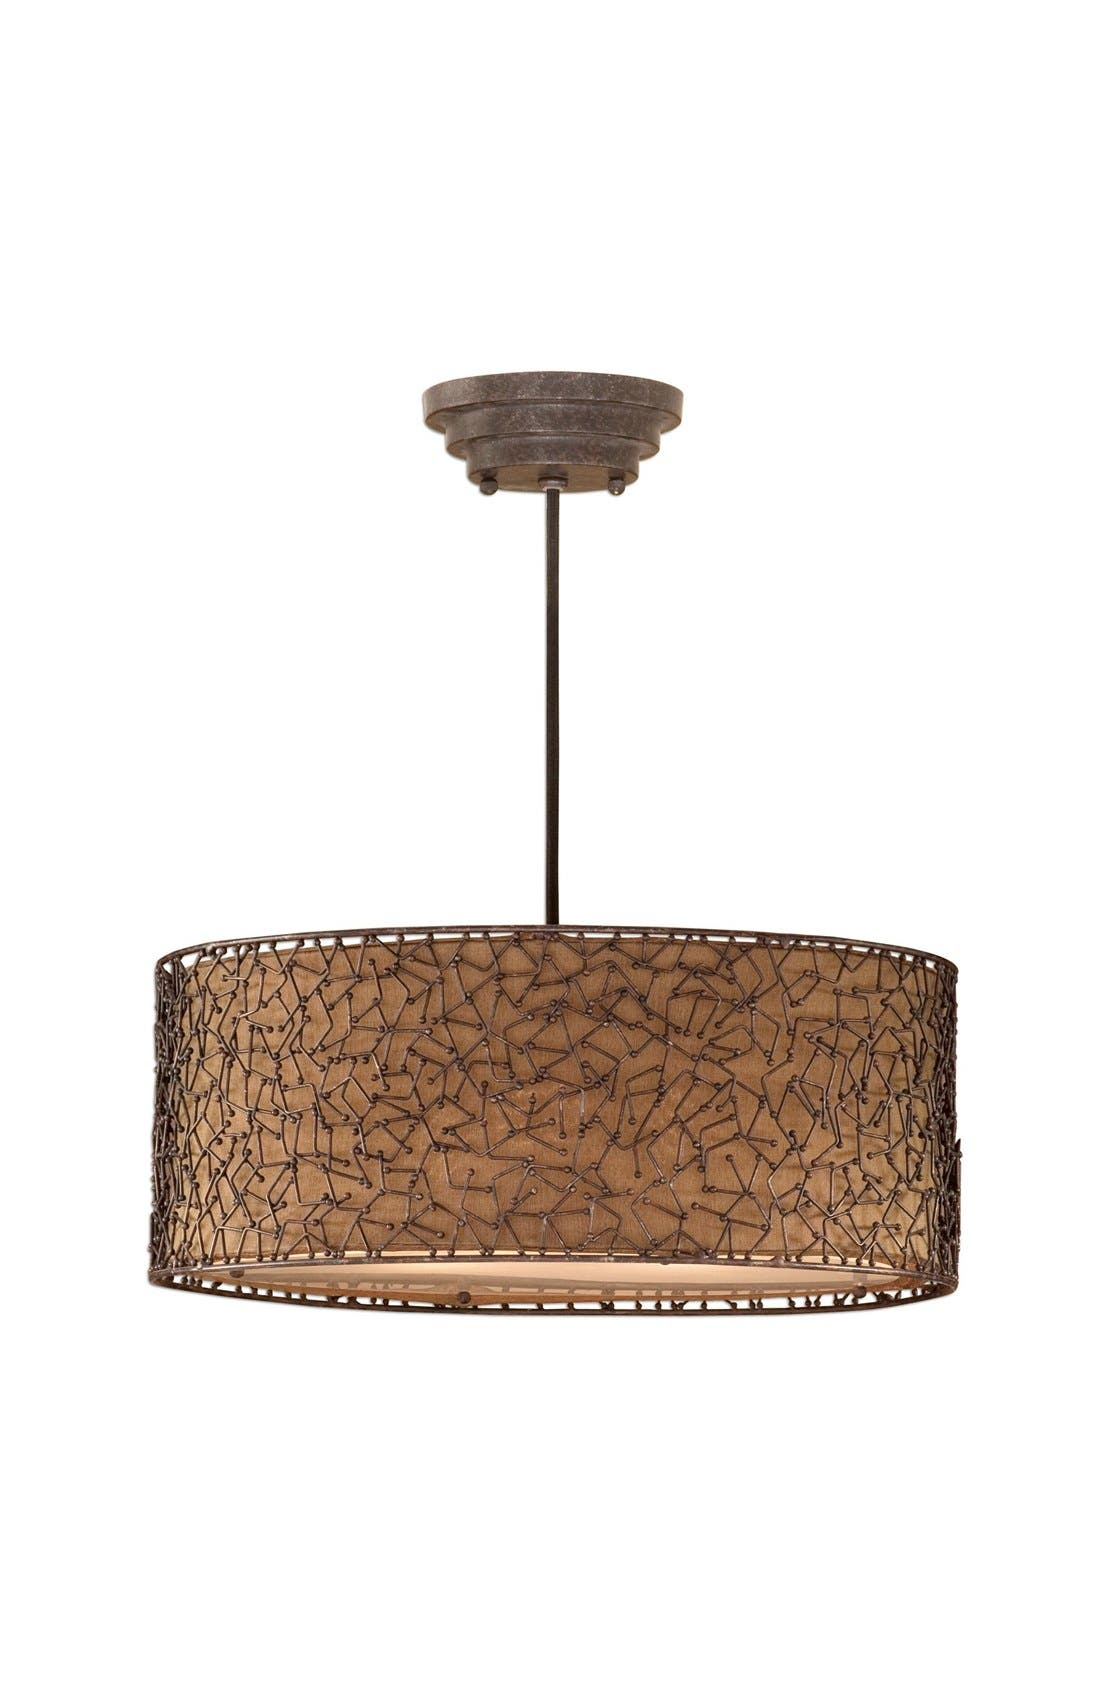 Alternate Image 1 Selected - Uttermost 'Brandon' Pendant Light